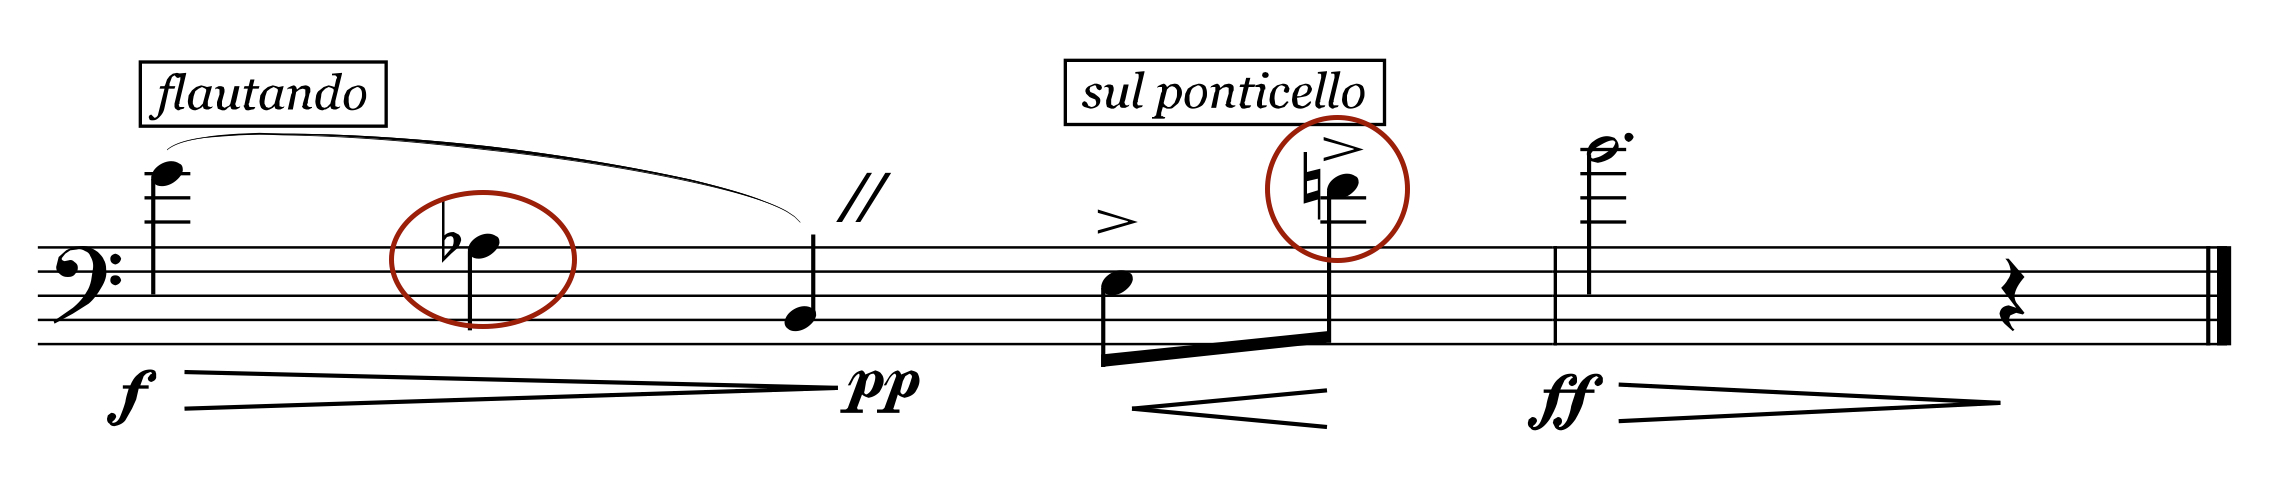 Experiment with changing notes to leave the traditional home key of G-major